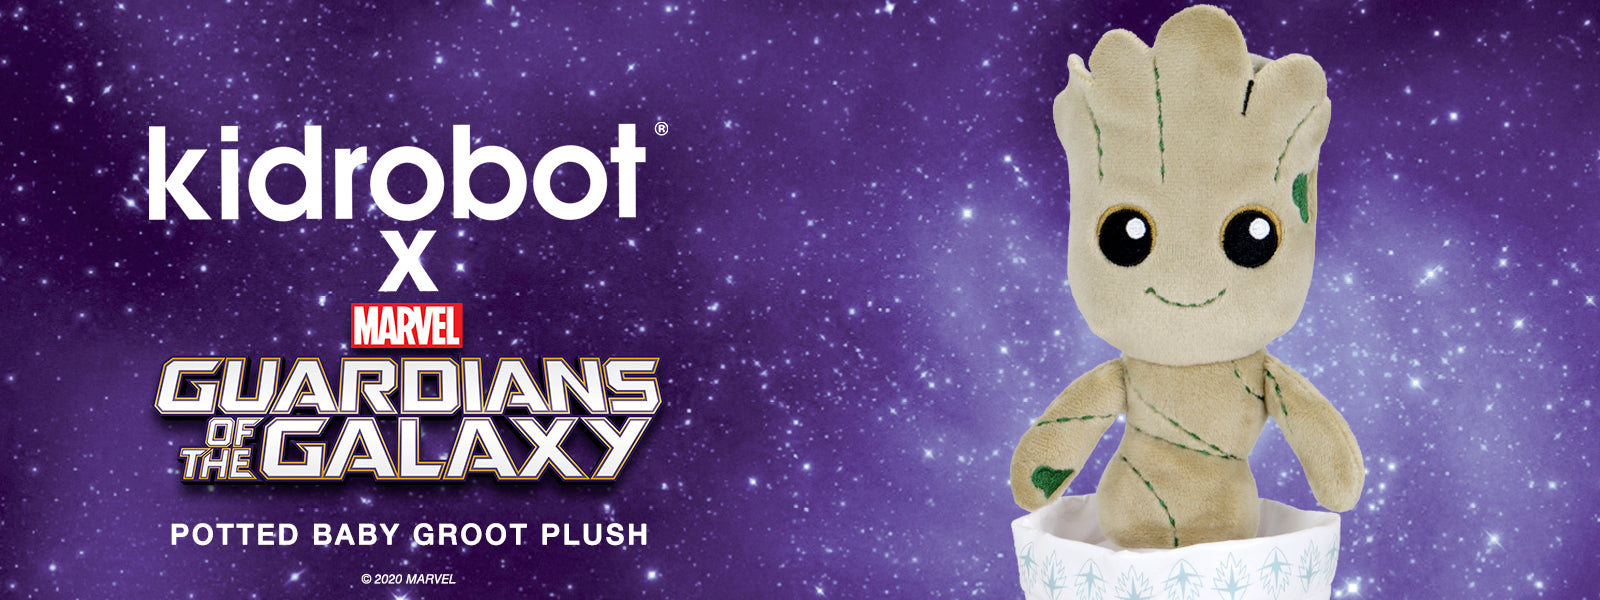 Kidrobot x Marvel Guardians of the Galaxy Potted Baby Groot Plush Toy